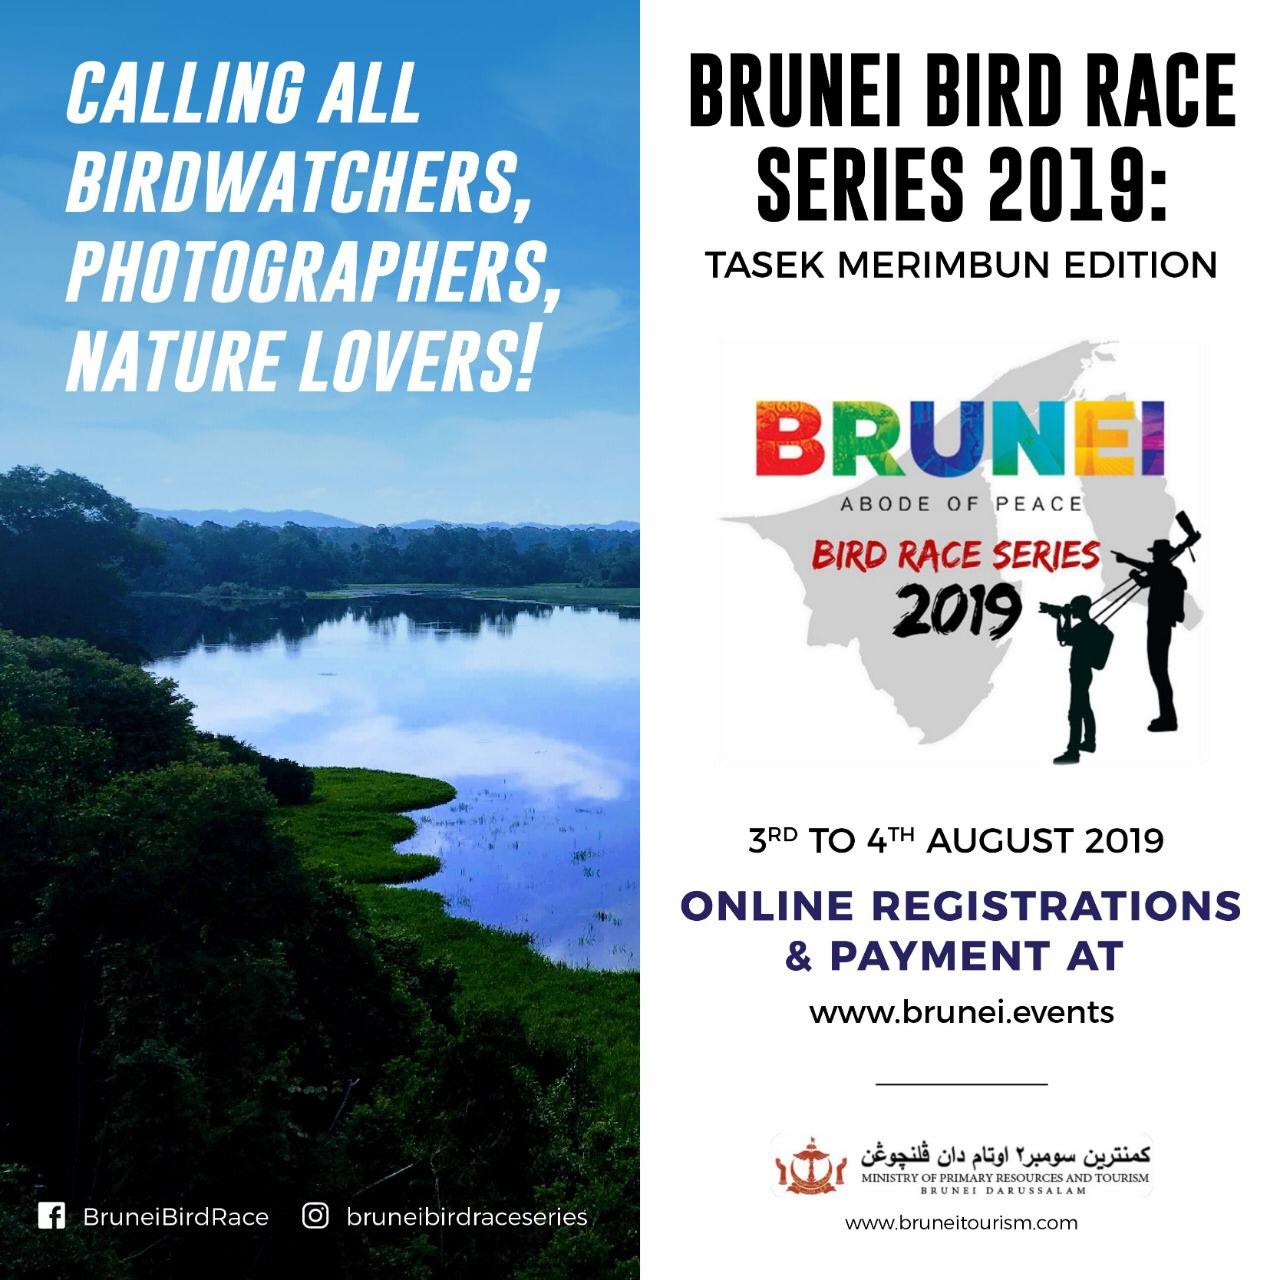 Brunei Bird Race.jpeg